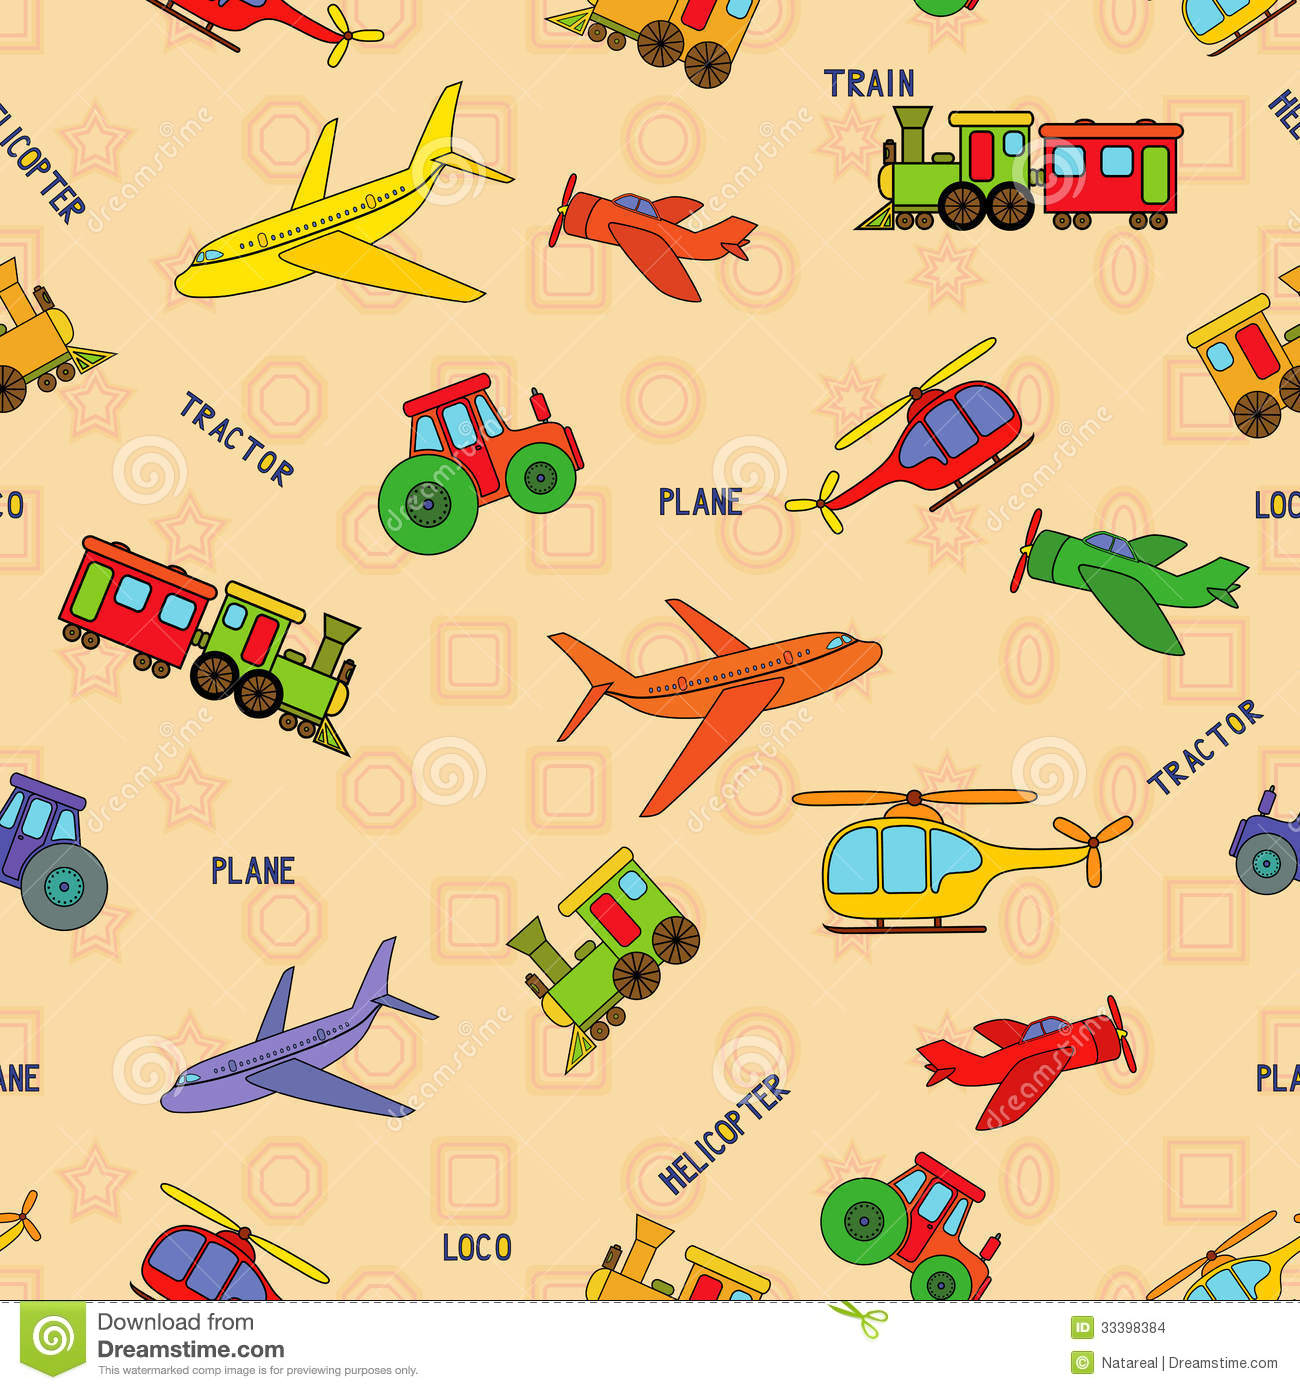 helicopter kid with Stock Images Seamless Transport Technique Pattern Lo Otive Airliner Airplane Helicopter Train Tractor Their Titles Background Can Be Image33398384 on Super Wings moreover Printable Challenging Dot To Dot Puzzles as well 02 also Cheap Transformers Tank further 2.